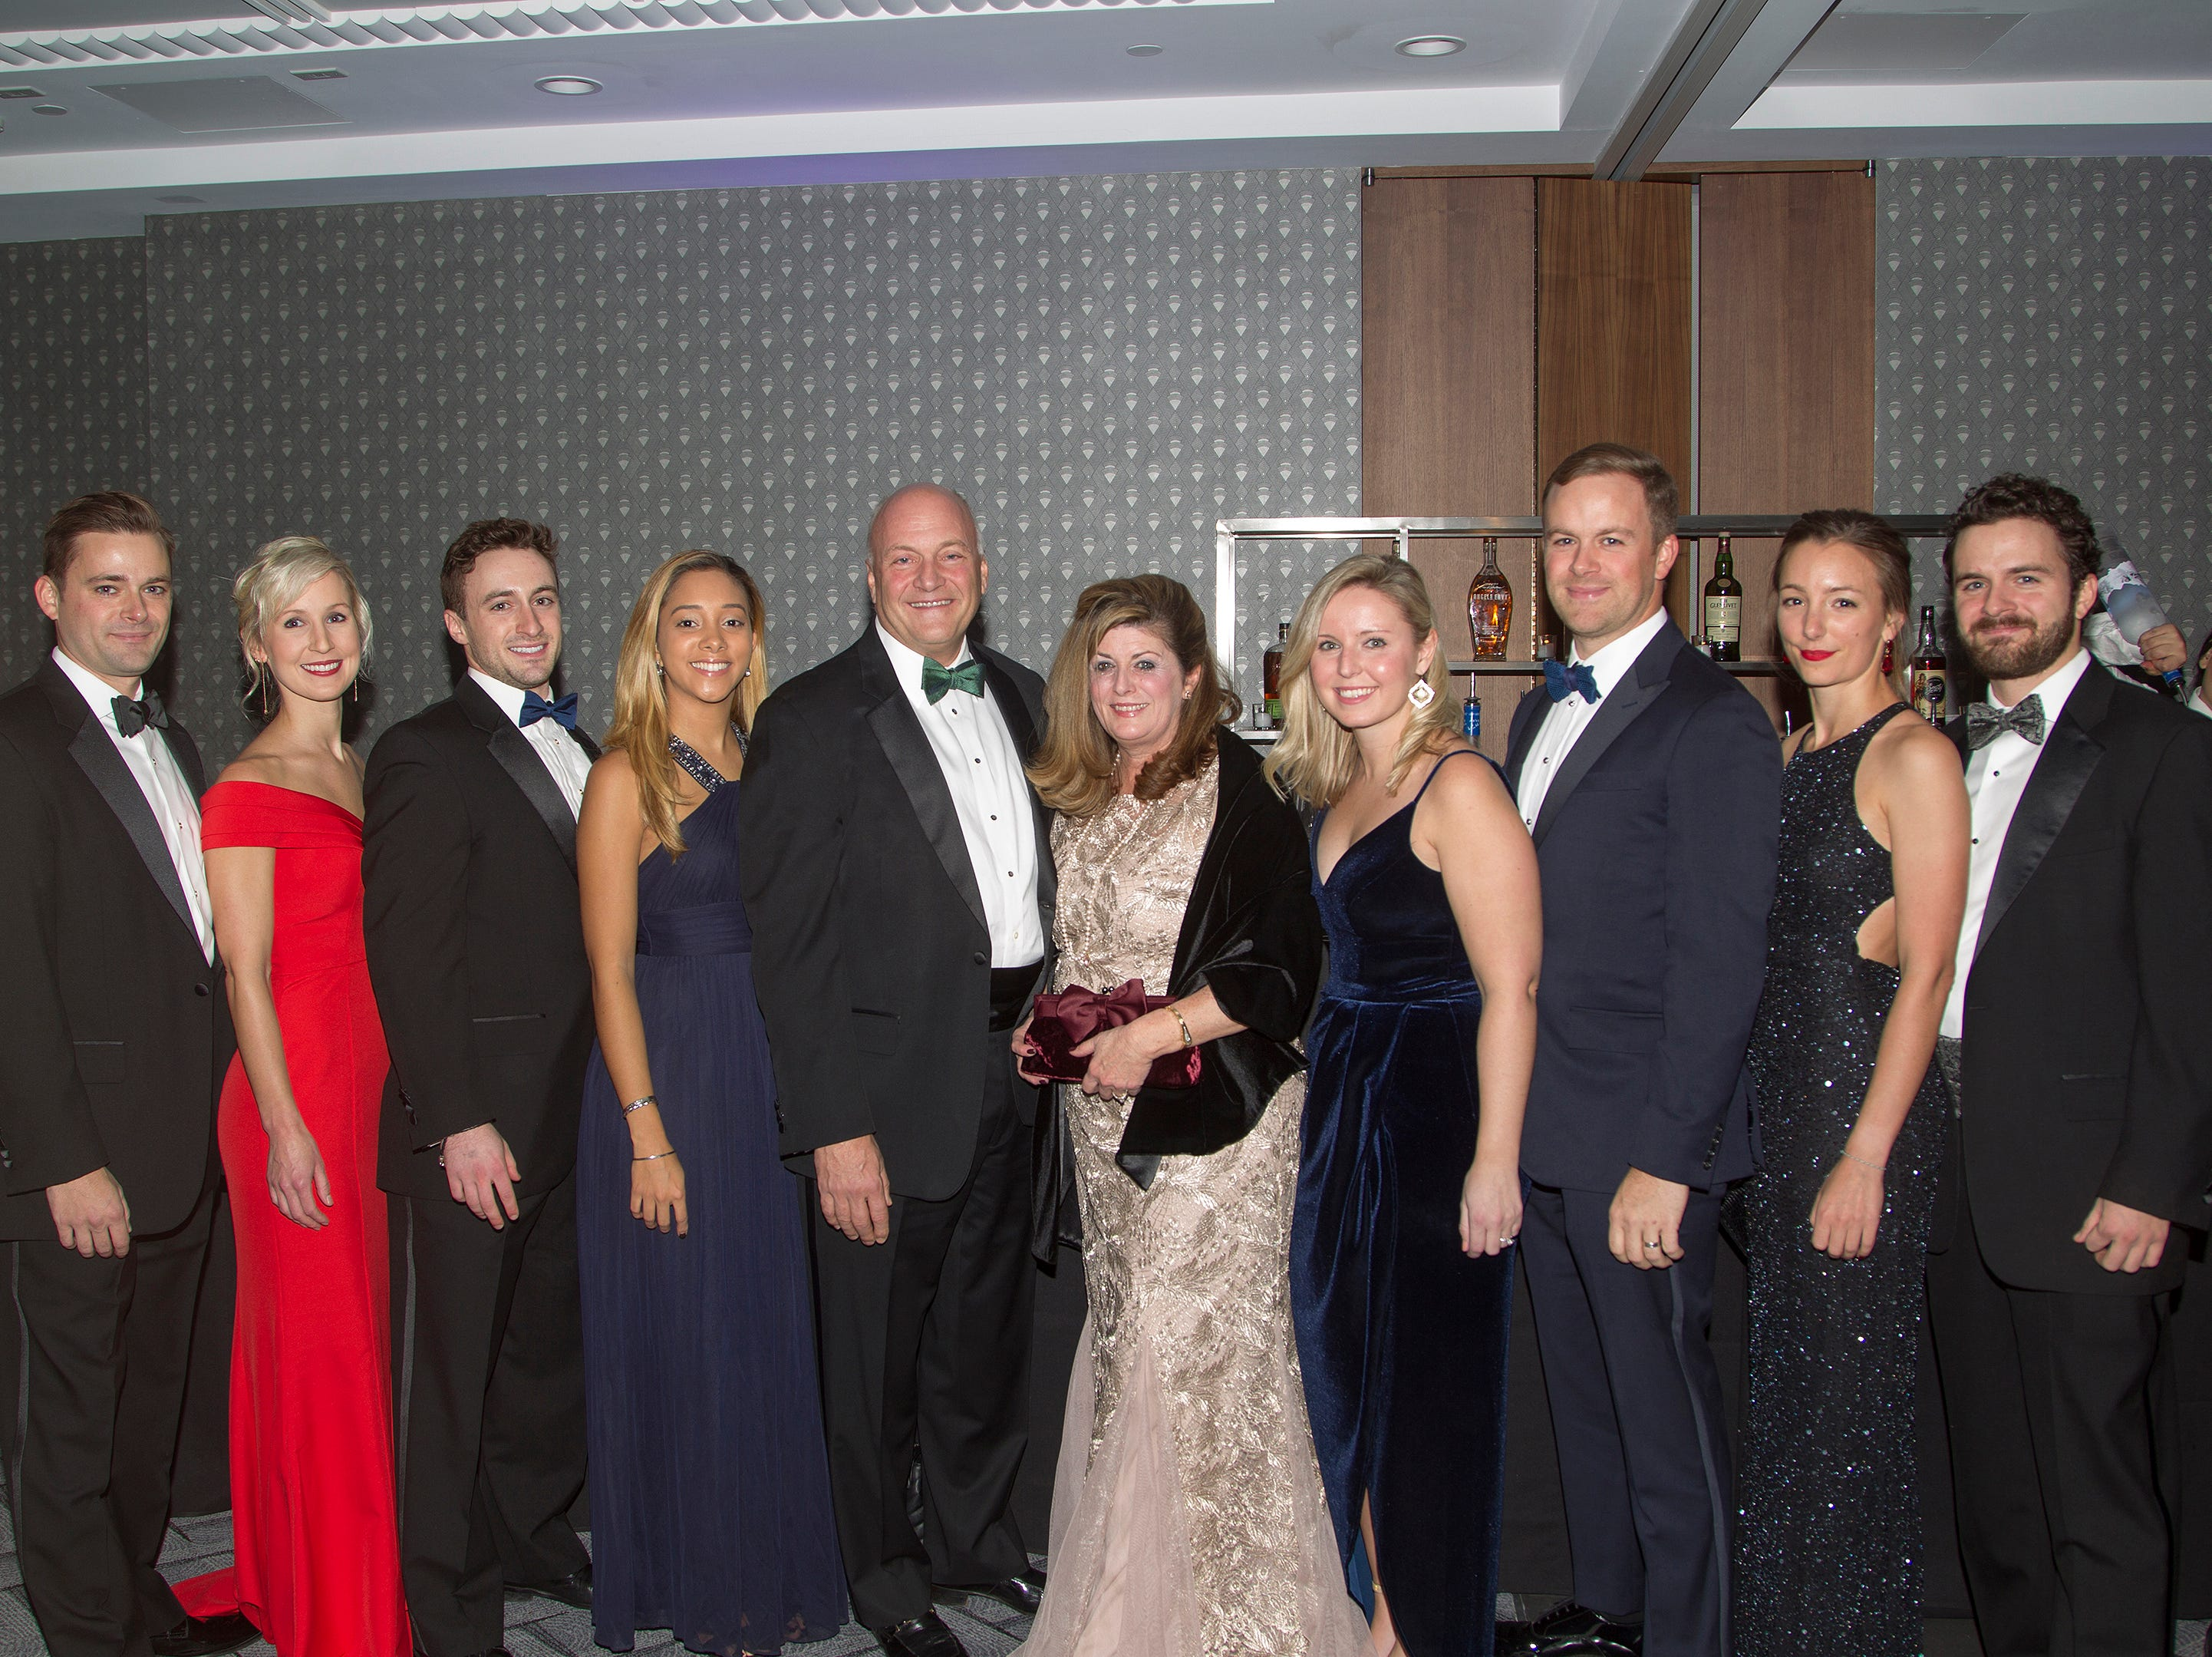 Brendan Maron, Shannon Krall, Patrick Maron, Stephanie Henry, Michael Maron, Diane Maron, Carley Maron, Michael Maron, Kyle Maron, and Kristina Kucerova. Holy Name Medical Center held its 2018 Founders Ball in NYC at Ziegfeld Ballroom. 11/17/2018